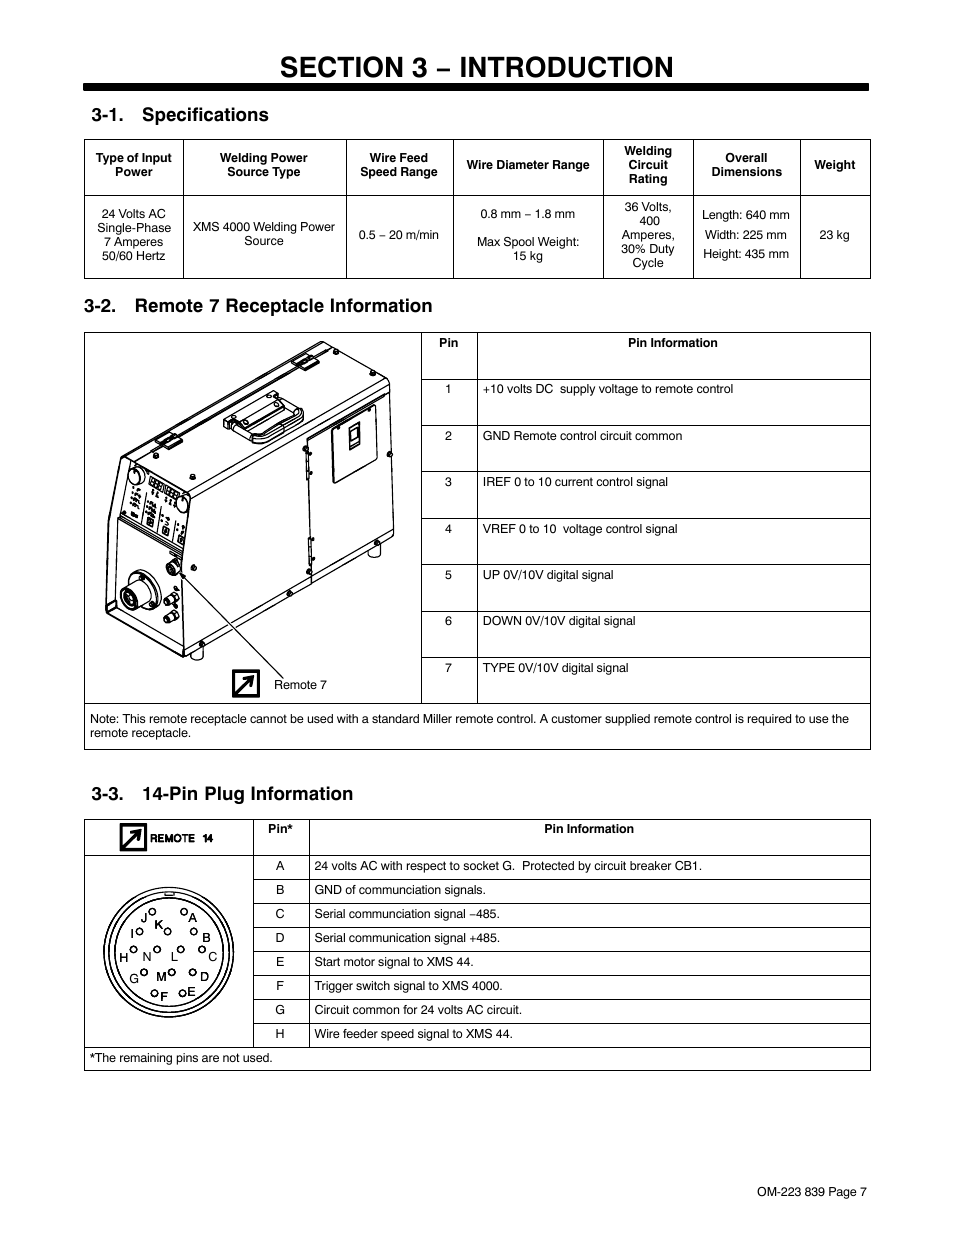 Section 3 − introduction, 1. specifications, 2. remote 7 receptacle  information   Miller Electric XMS 44 User Manual   Page 11 / 32Manuals Directory